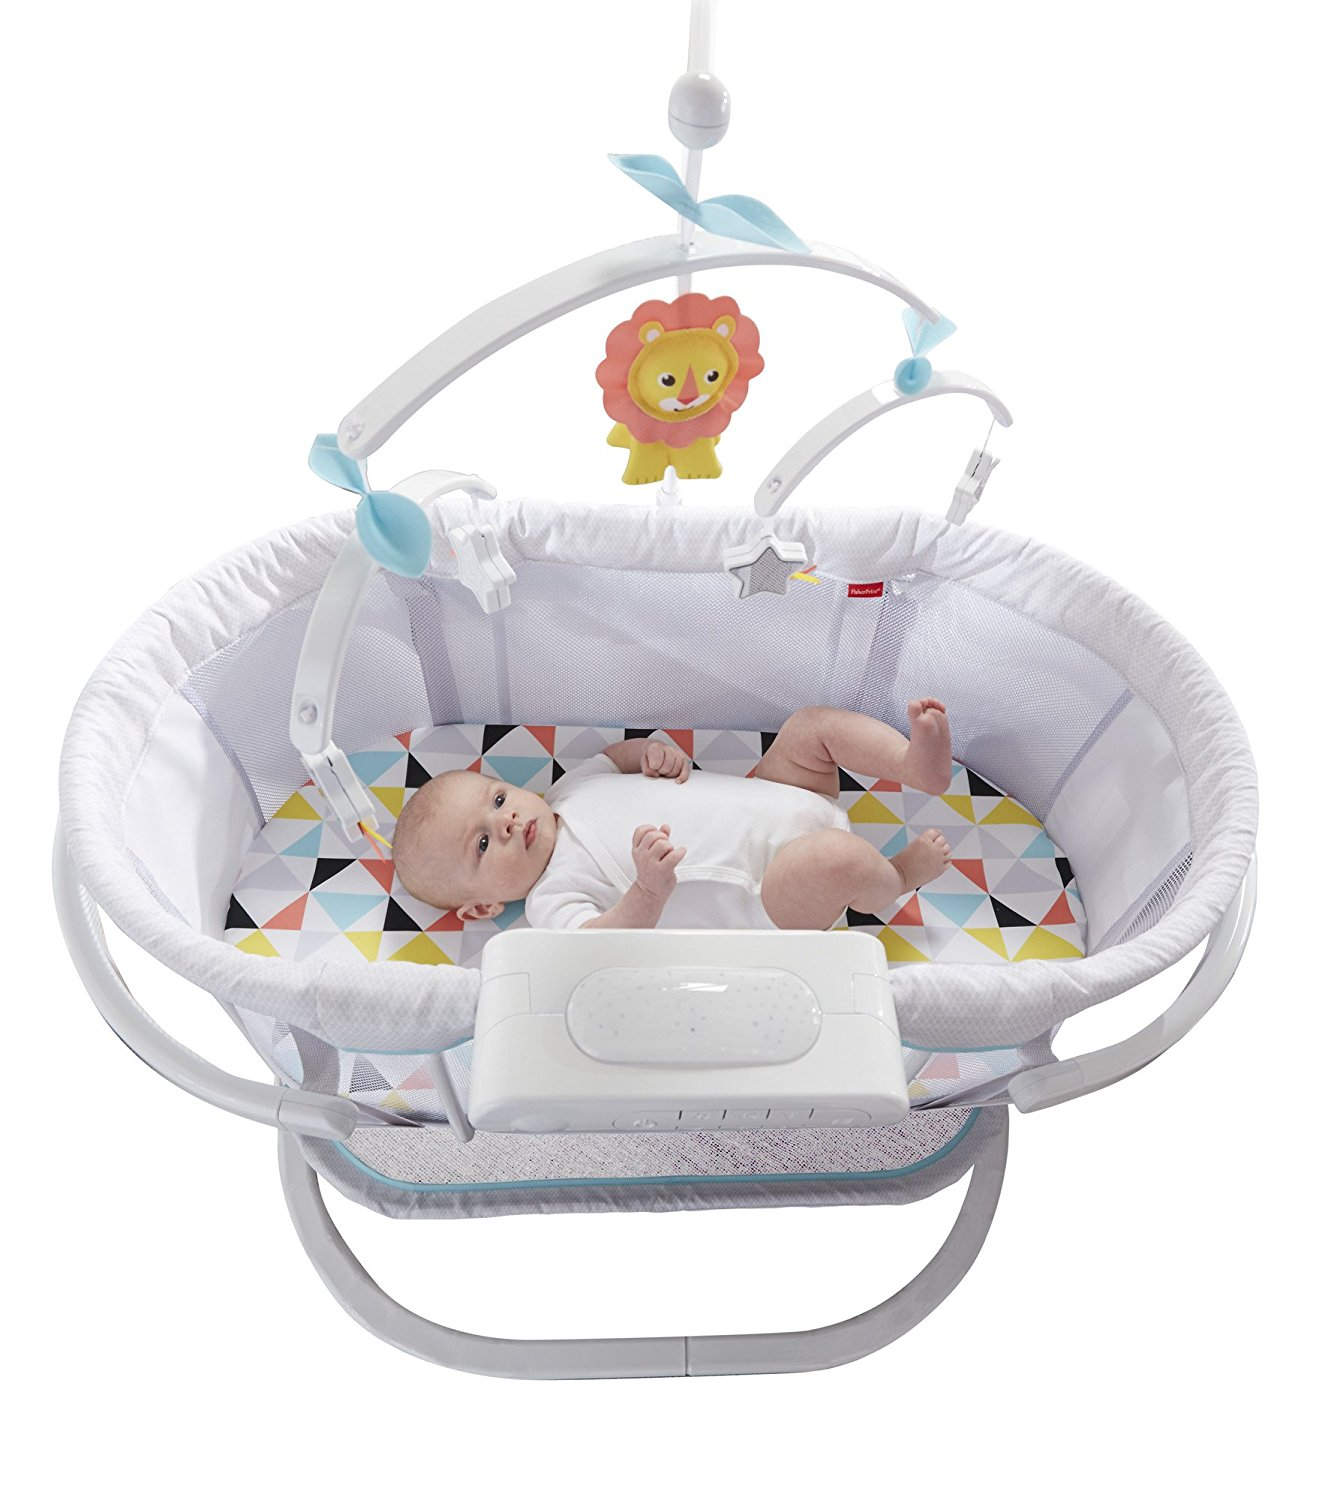 Fisher Price Soothing Motions Bassinet.jpg